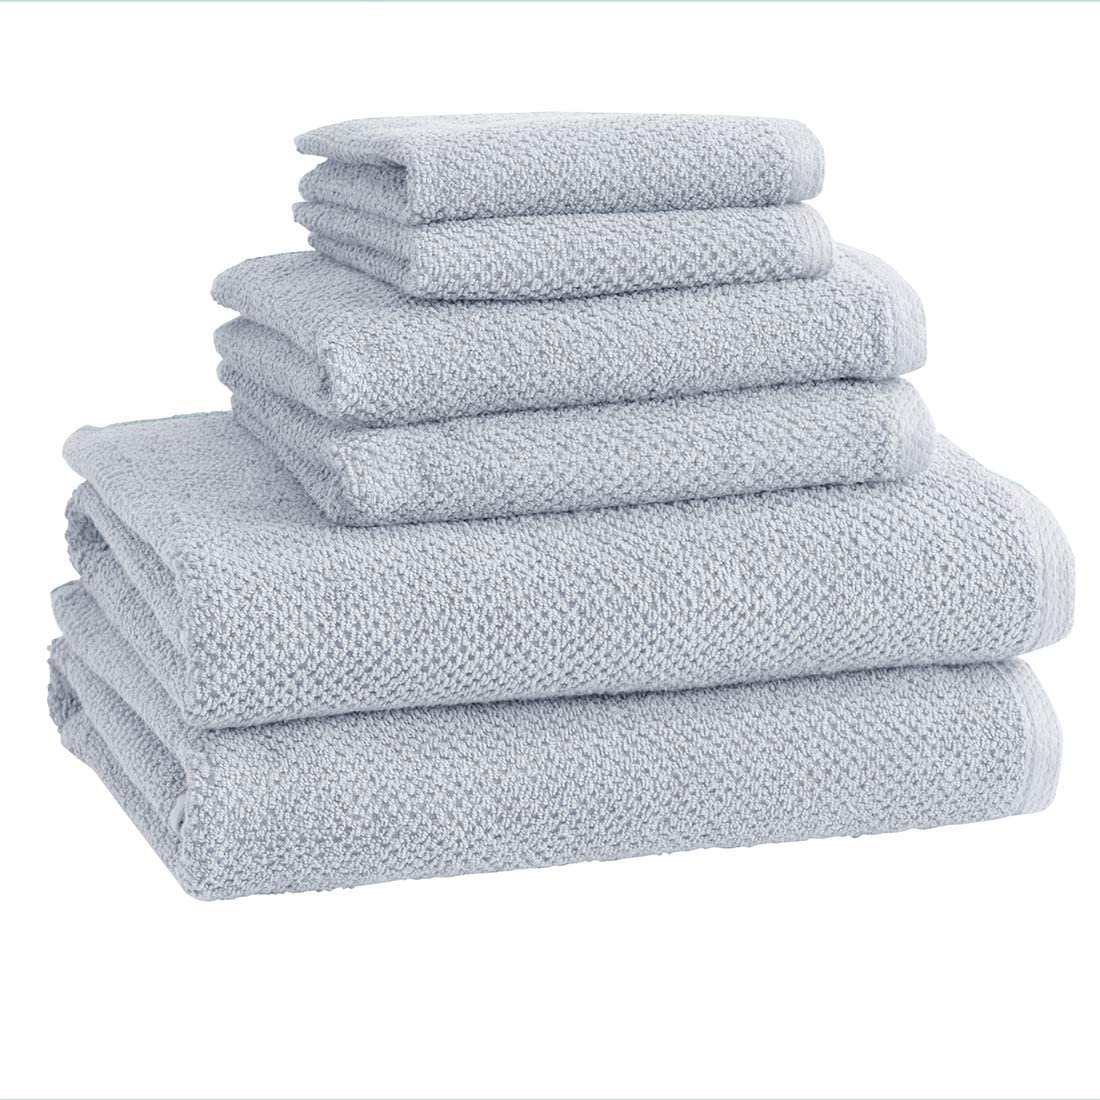 100% Cotton Bath Towels, Luxury 6 Piece Set - 2 Bath Towels, 2 Hand Towels and 2 Washcloths. Quick-Dry, Absorbent Textured Popcorn Weave Towels. Acacia Collection (6 Piece Set, Sterling Blue)